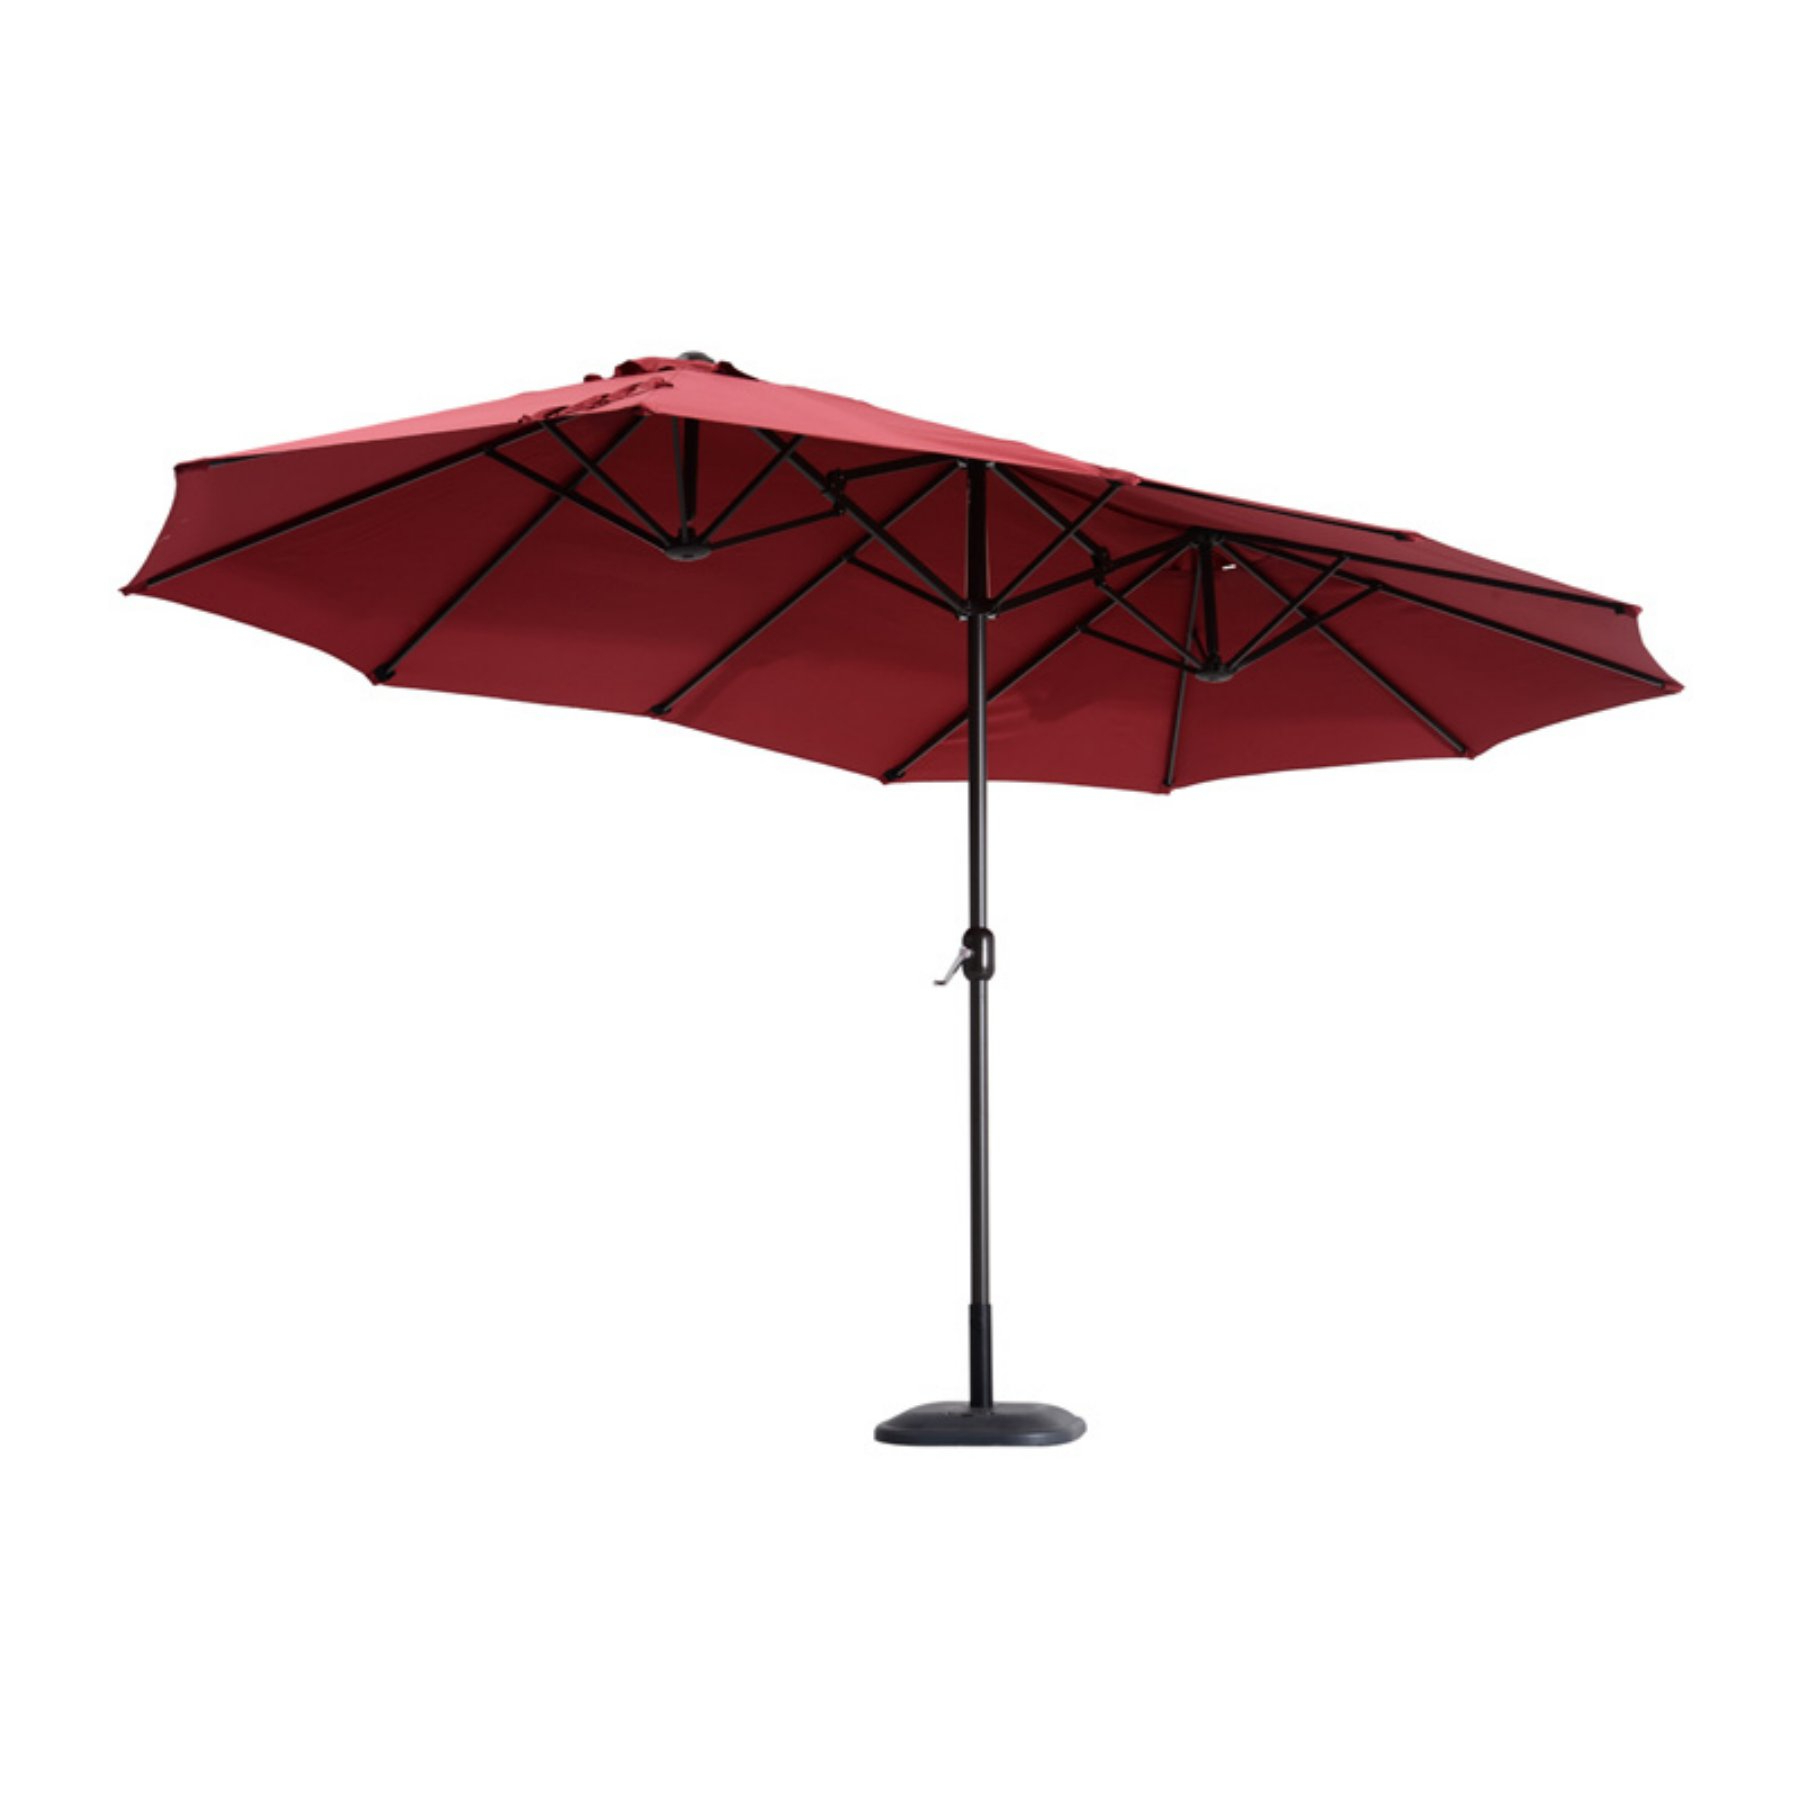 Outsunny 15 Ft. Aluminum Outdoor Patio Market Double Sided Umbrella With Regard To Widely Used Lagasse Market Umbrellas (Gallery 9 of 20)